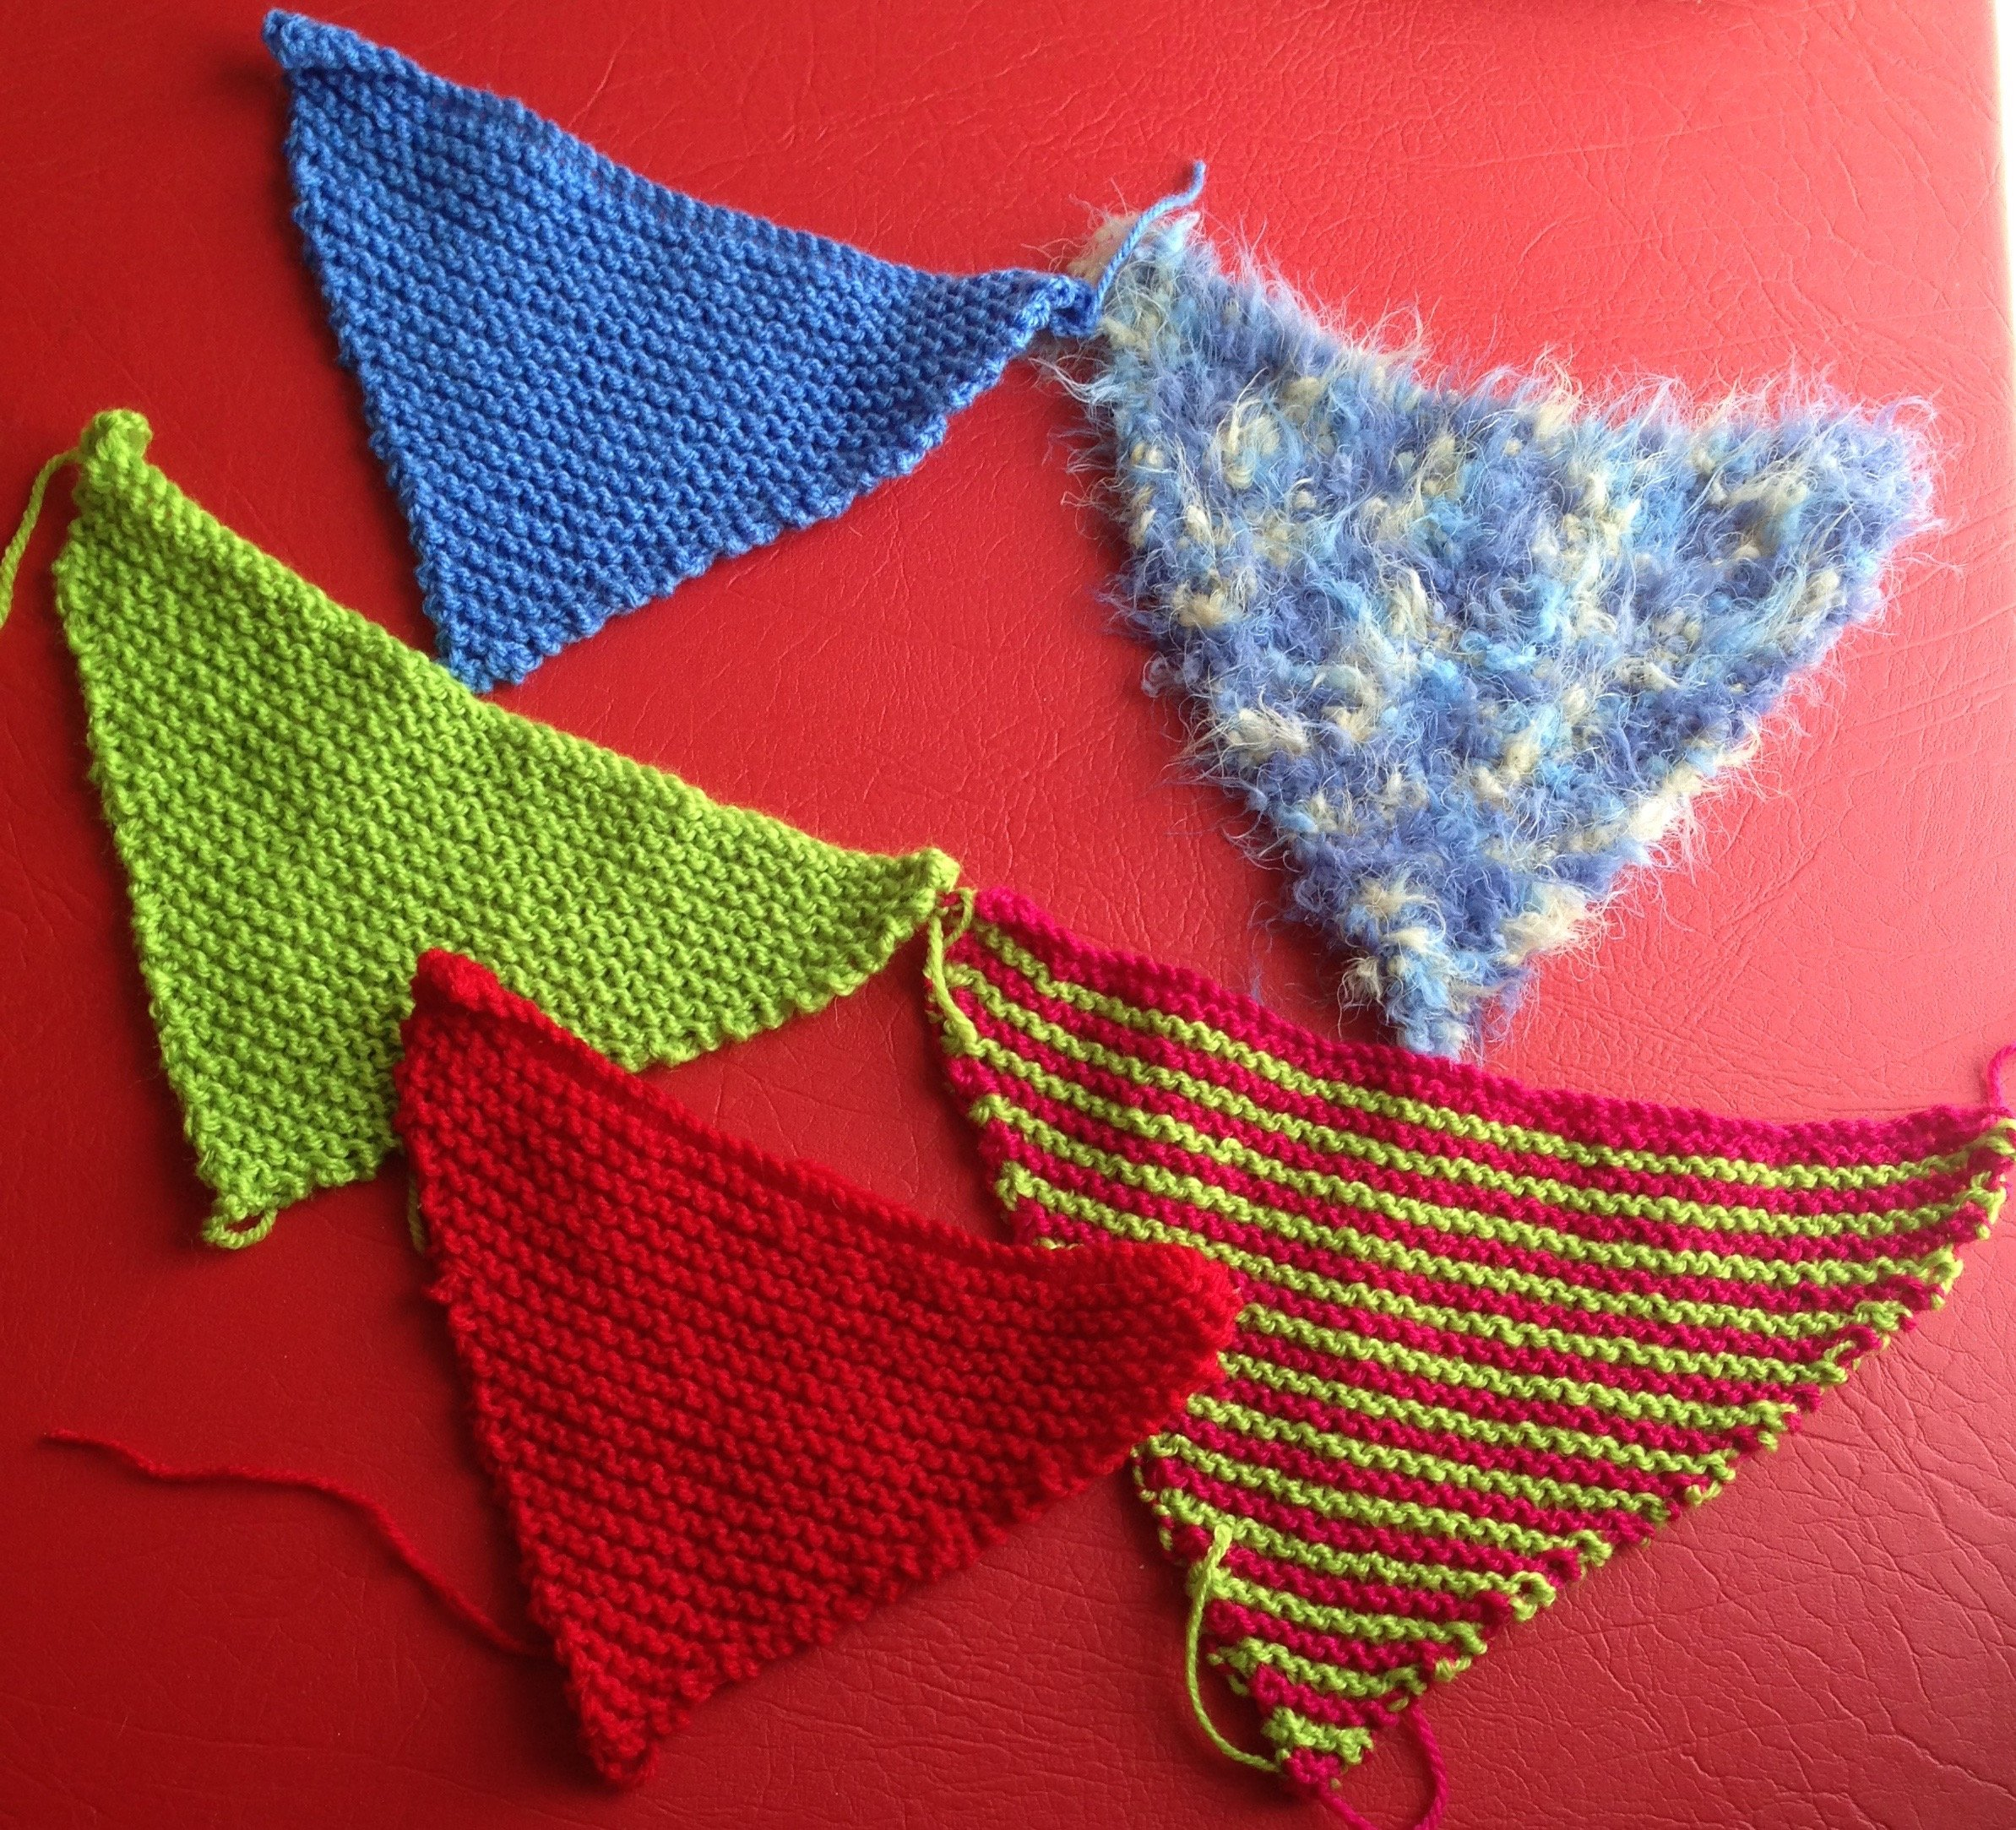 Bunting Knitting Pattern : Knitfest Bunting to knit/crochet